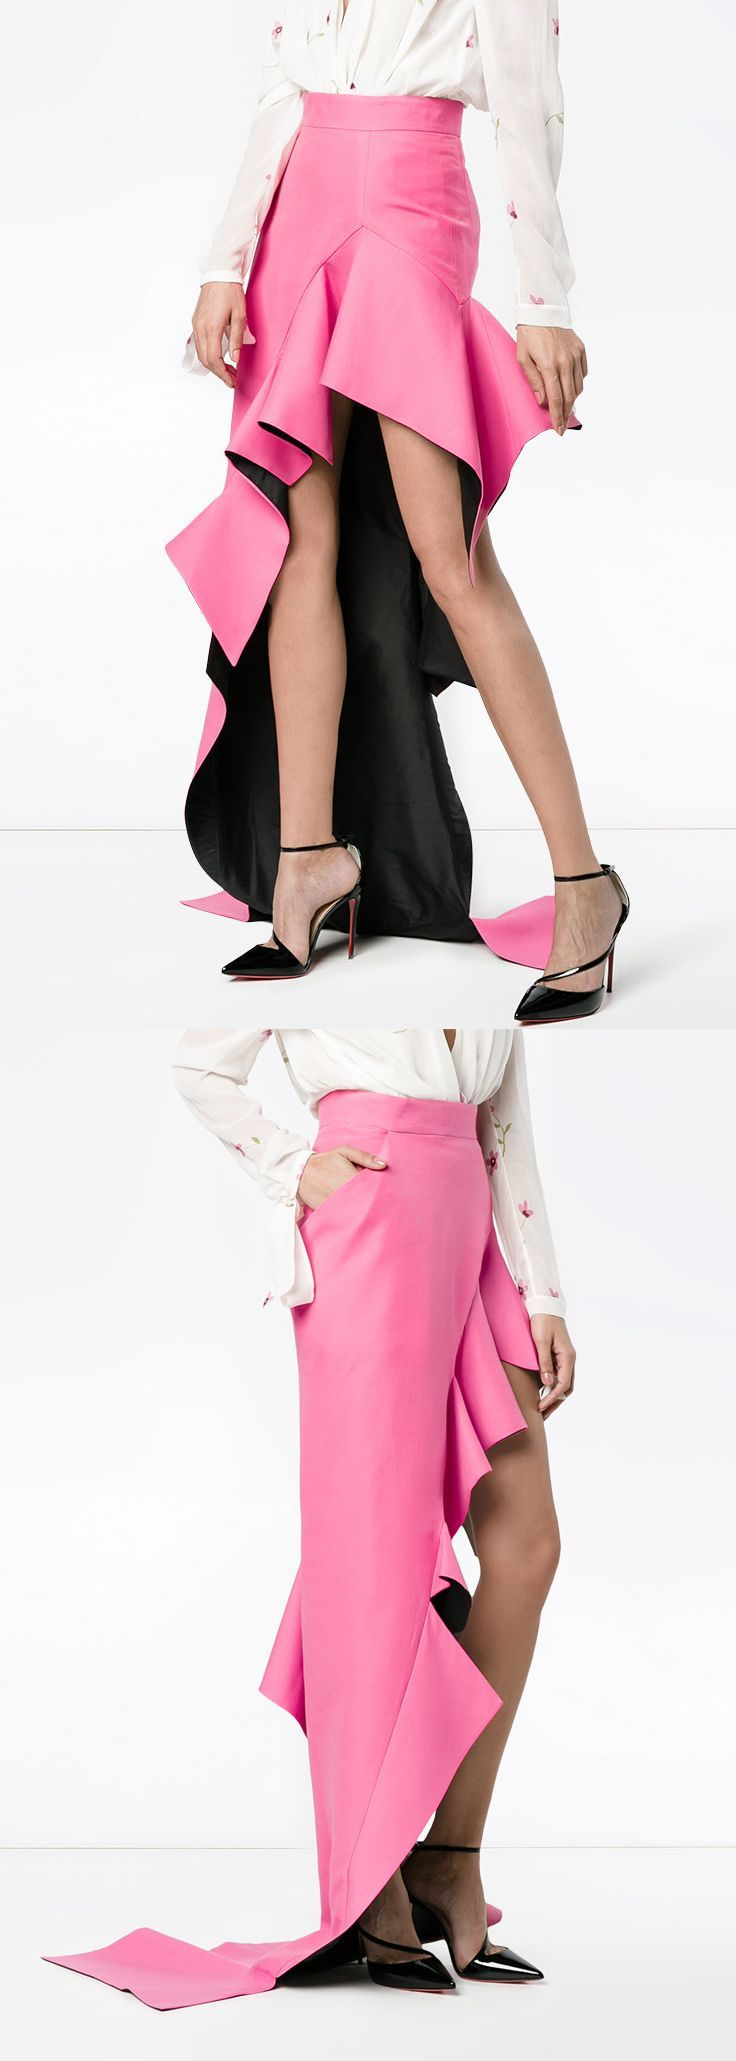 Ronald Van Der Kemp high waisted ruffle asymmetric skirt. Simply the most amazing pink skirt i've found this month. The perfect pink, with ruffles and asymmetric style - how on point. Colour pop it or wear with a pastel top for Race day fashion. Outfit inspiration. #fashionsonthefield #racingfashion #fotf #wearpink #thinkpink #frocktober #affiliatelink #outfitinspiration.